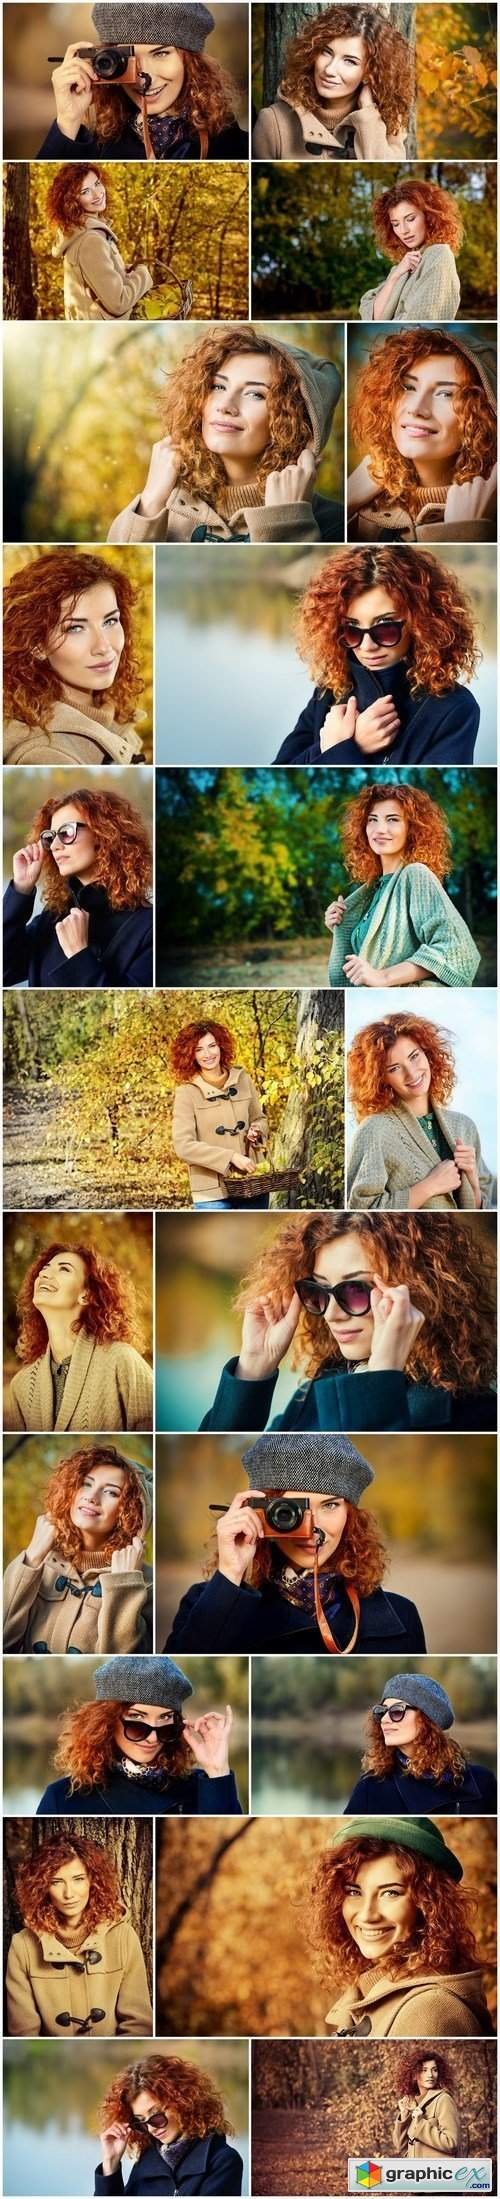 Romantic red haired girl - 22xUHQ JPEG